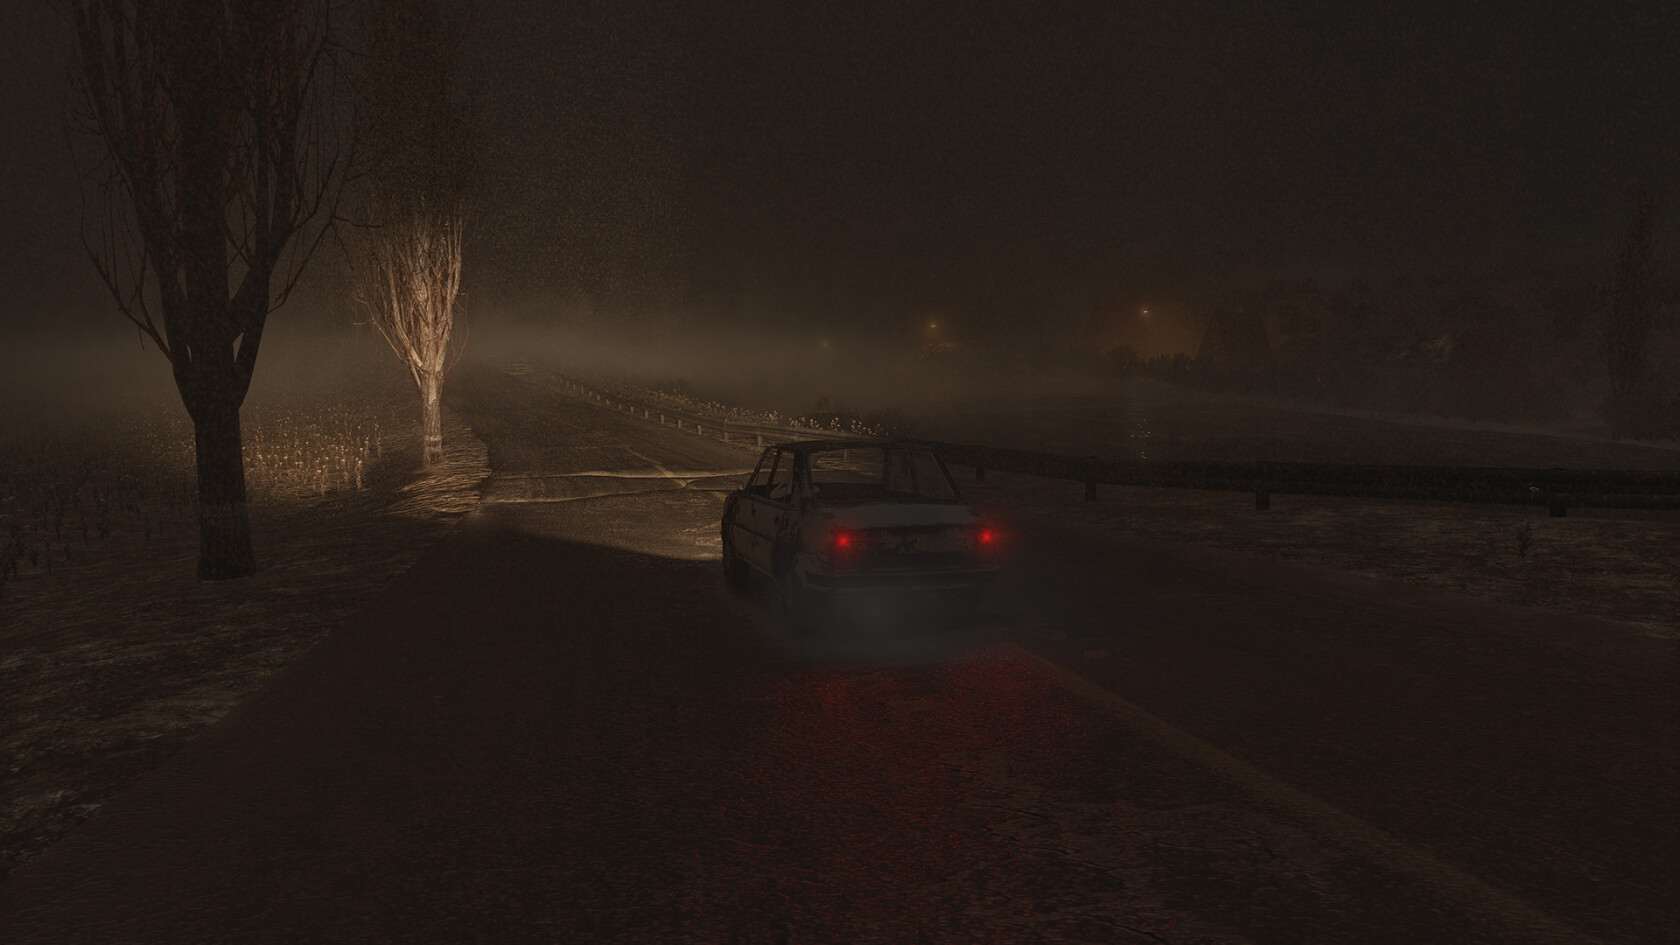 Driving Survival adds a welcomed twist to the survival horror genre